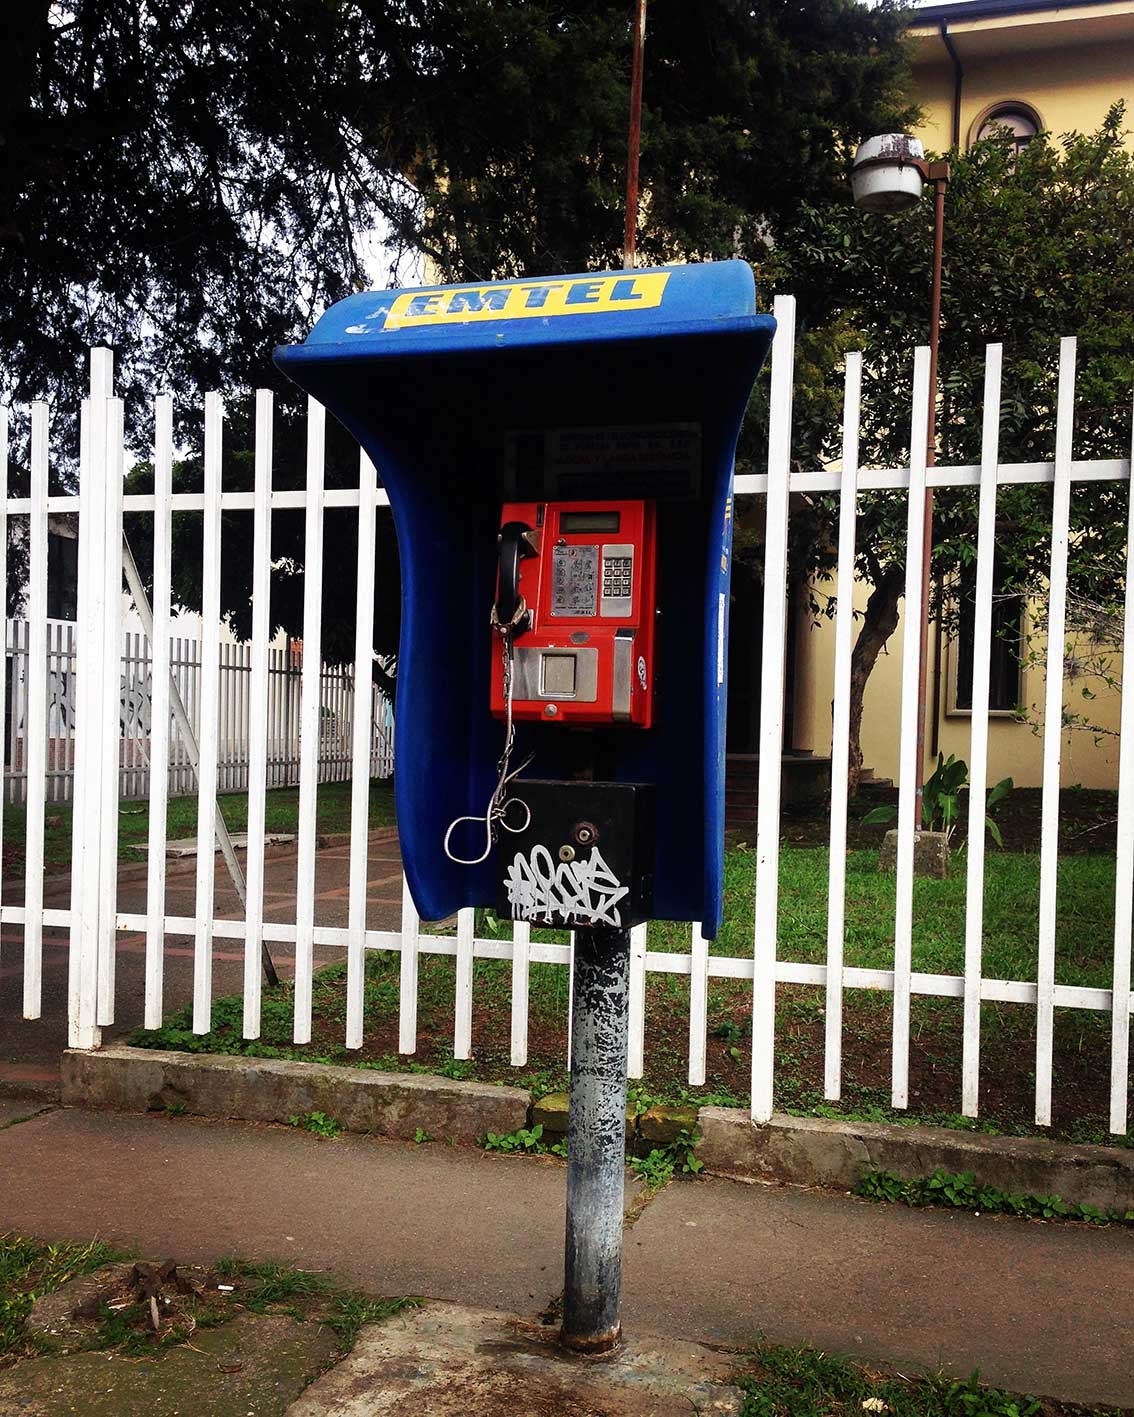 frontier-free-drifting-popayan-colombia-chain-phone-booth